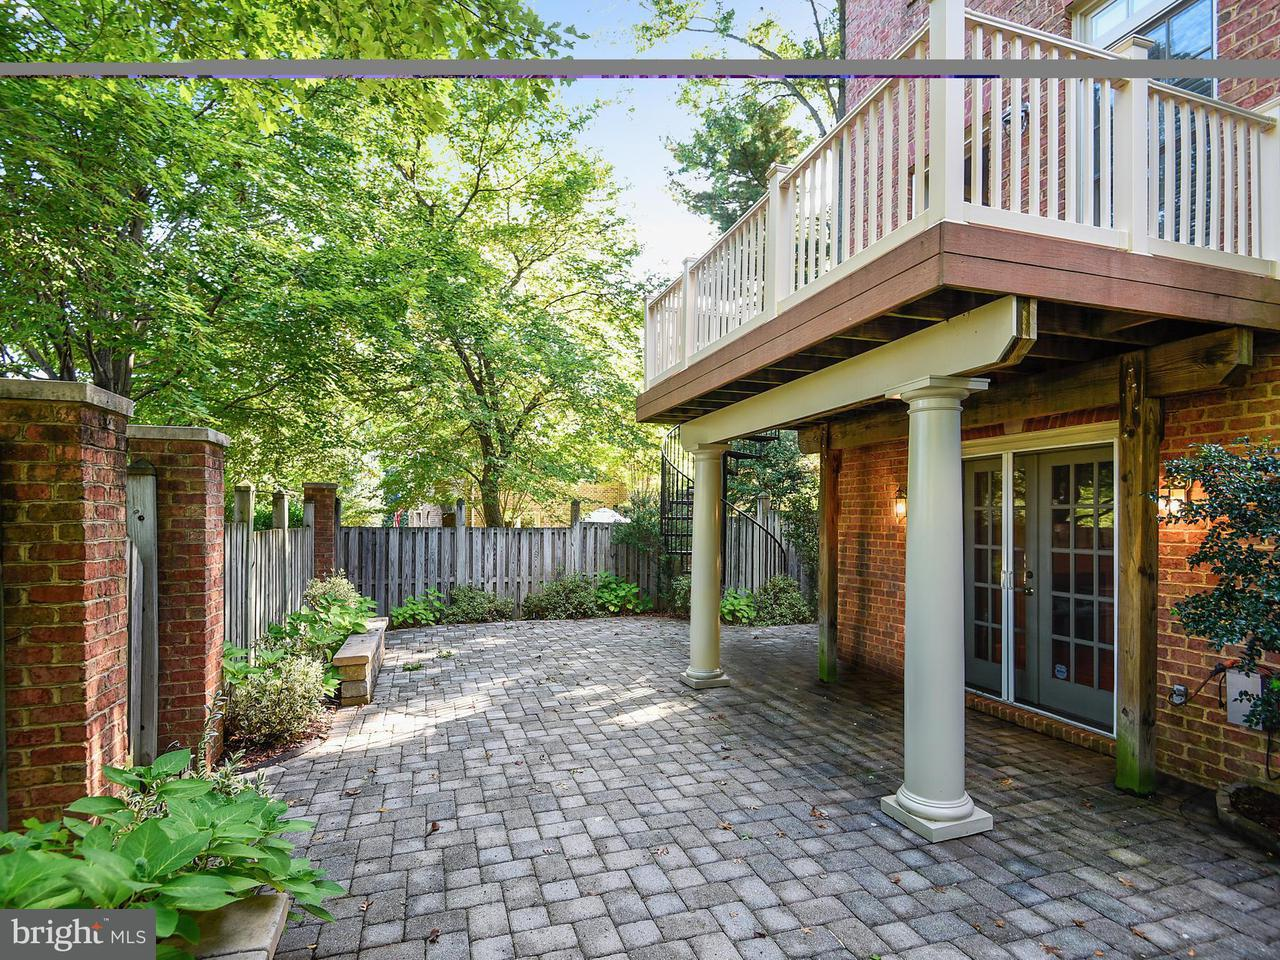 Townhouse for Sale at 2009 MAYFAIR MCLEAN Court 2009 MAYFAIR MCLEAN Court Falls Church, Virginia 22043 United States